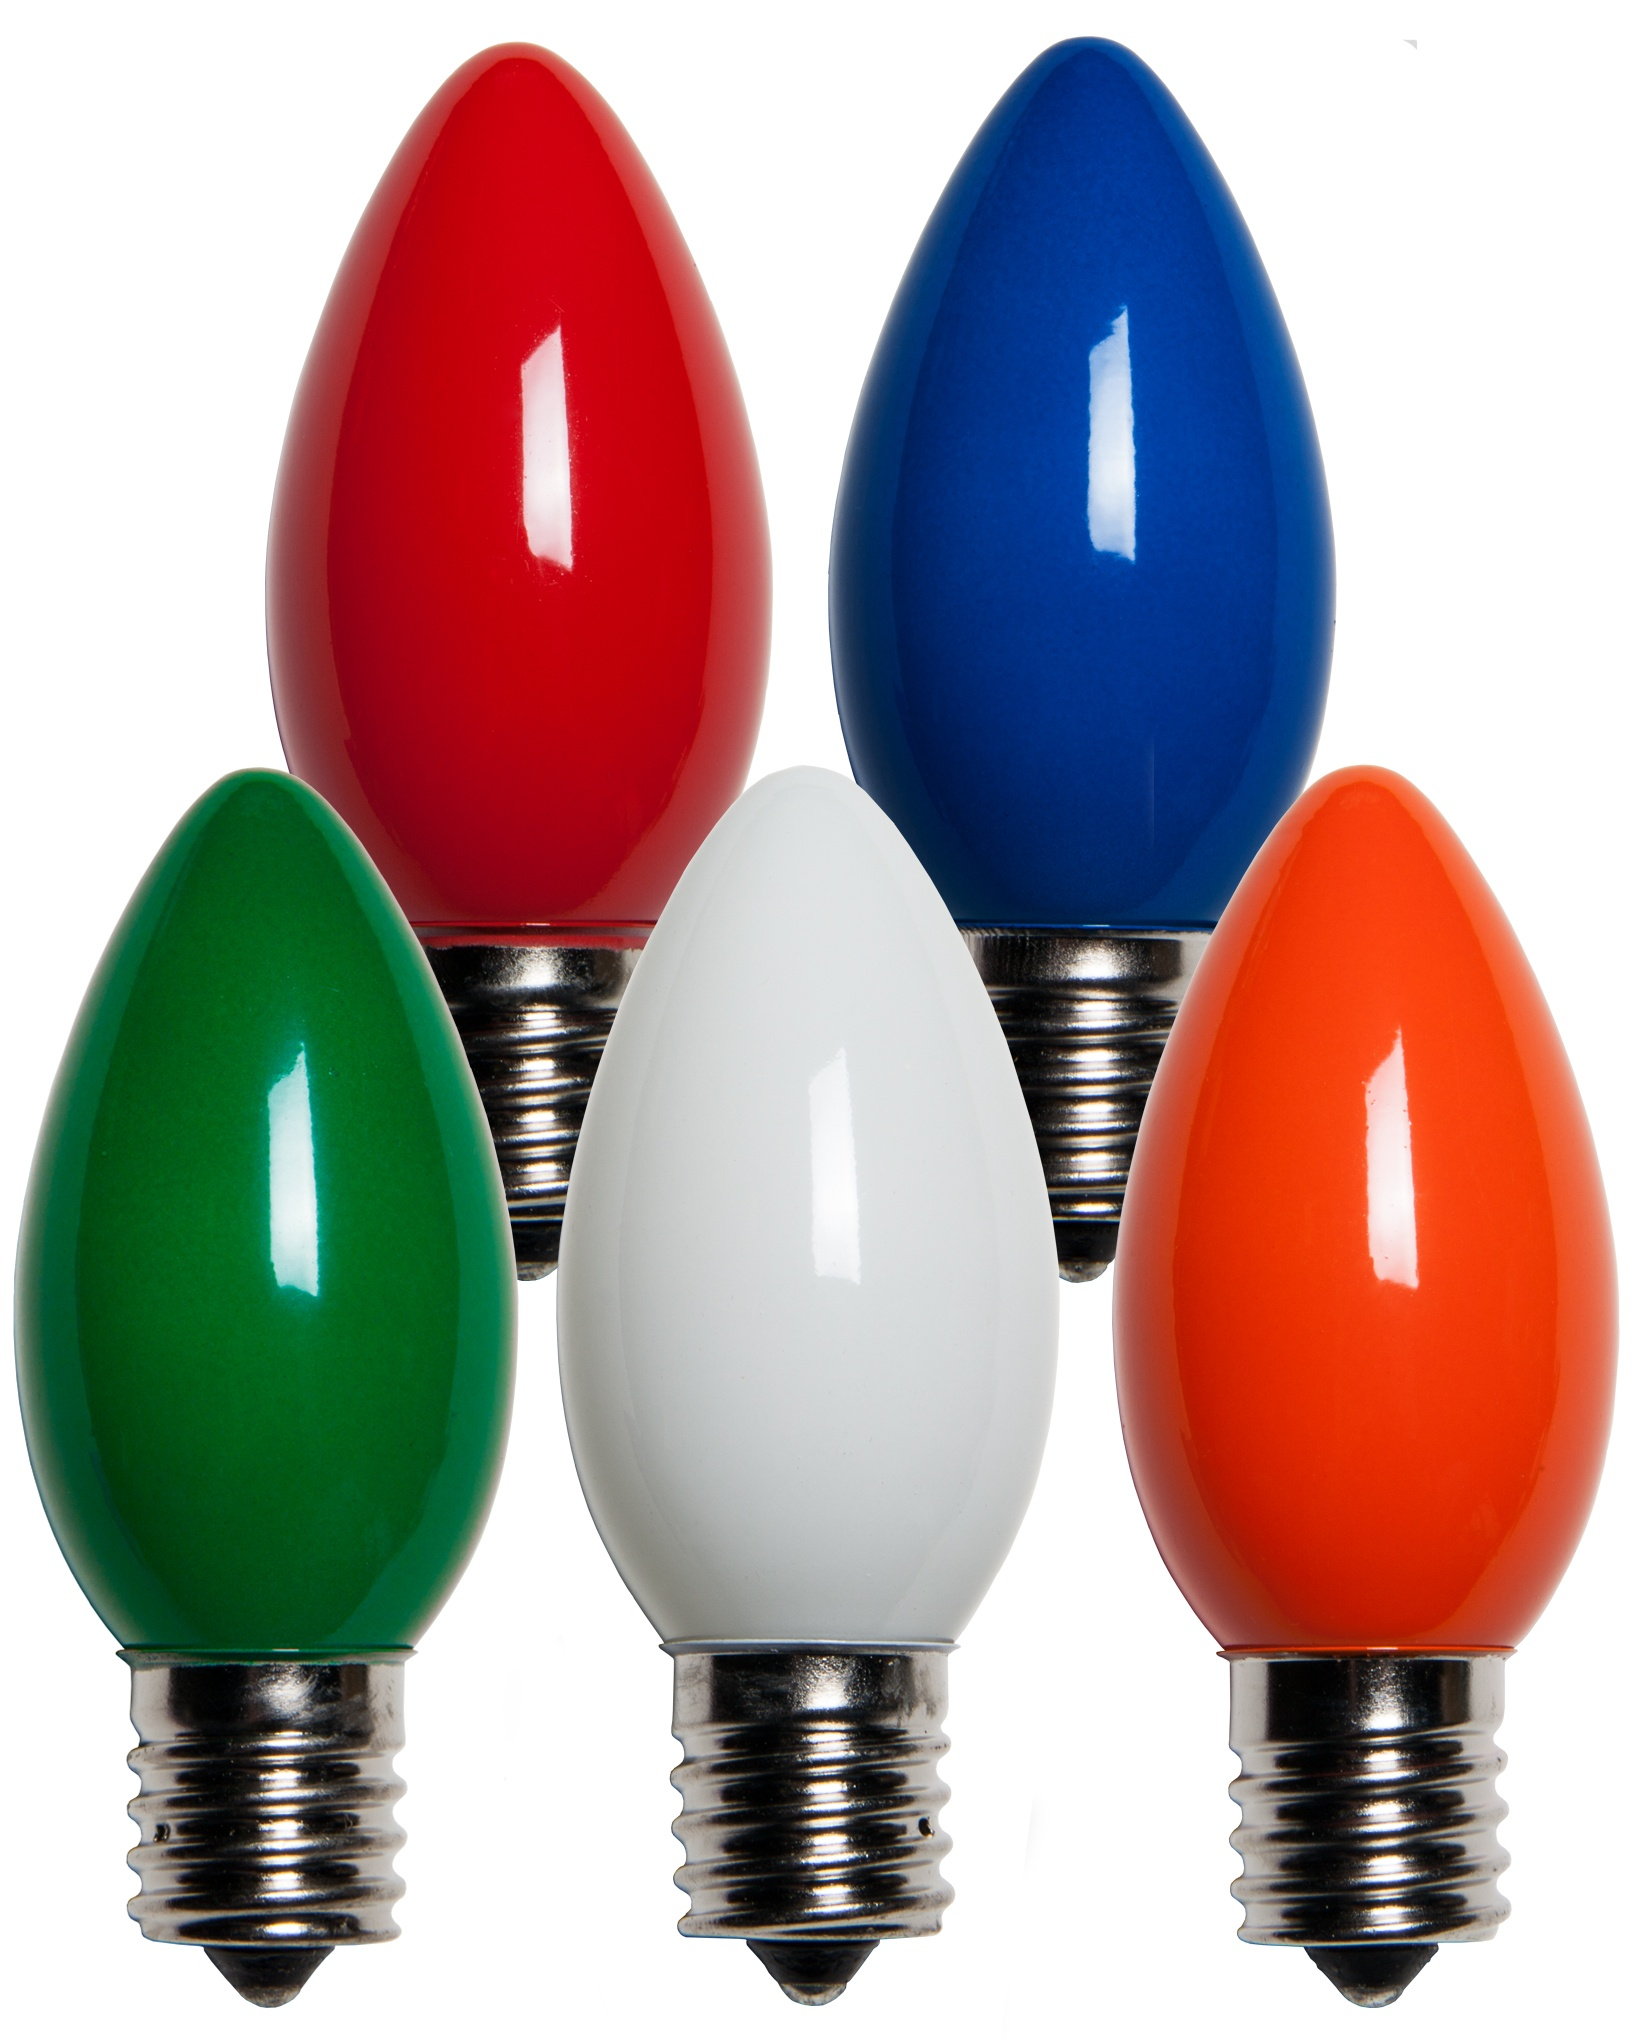 Ceramic Christmas Tree Bulbs